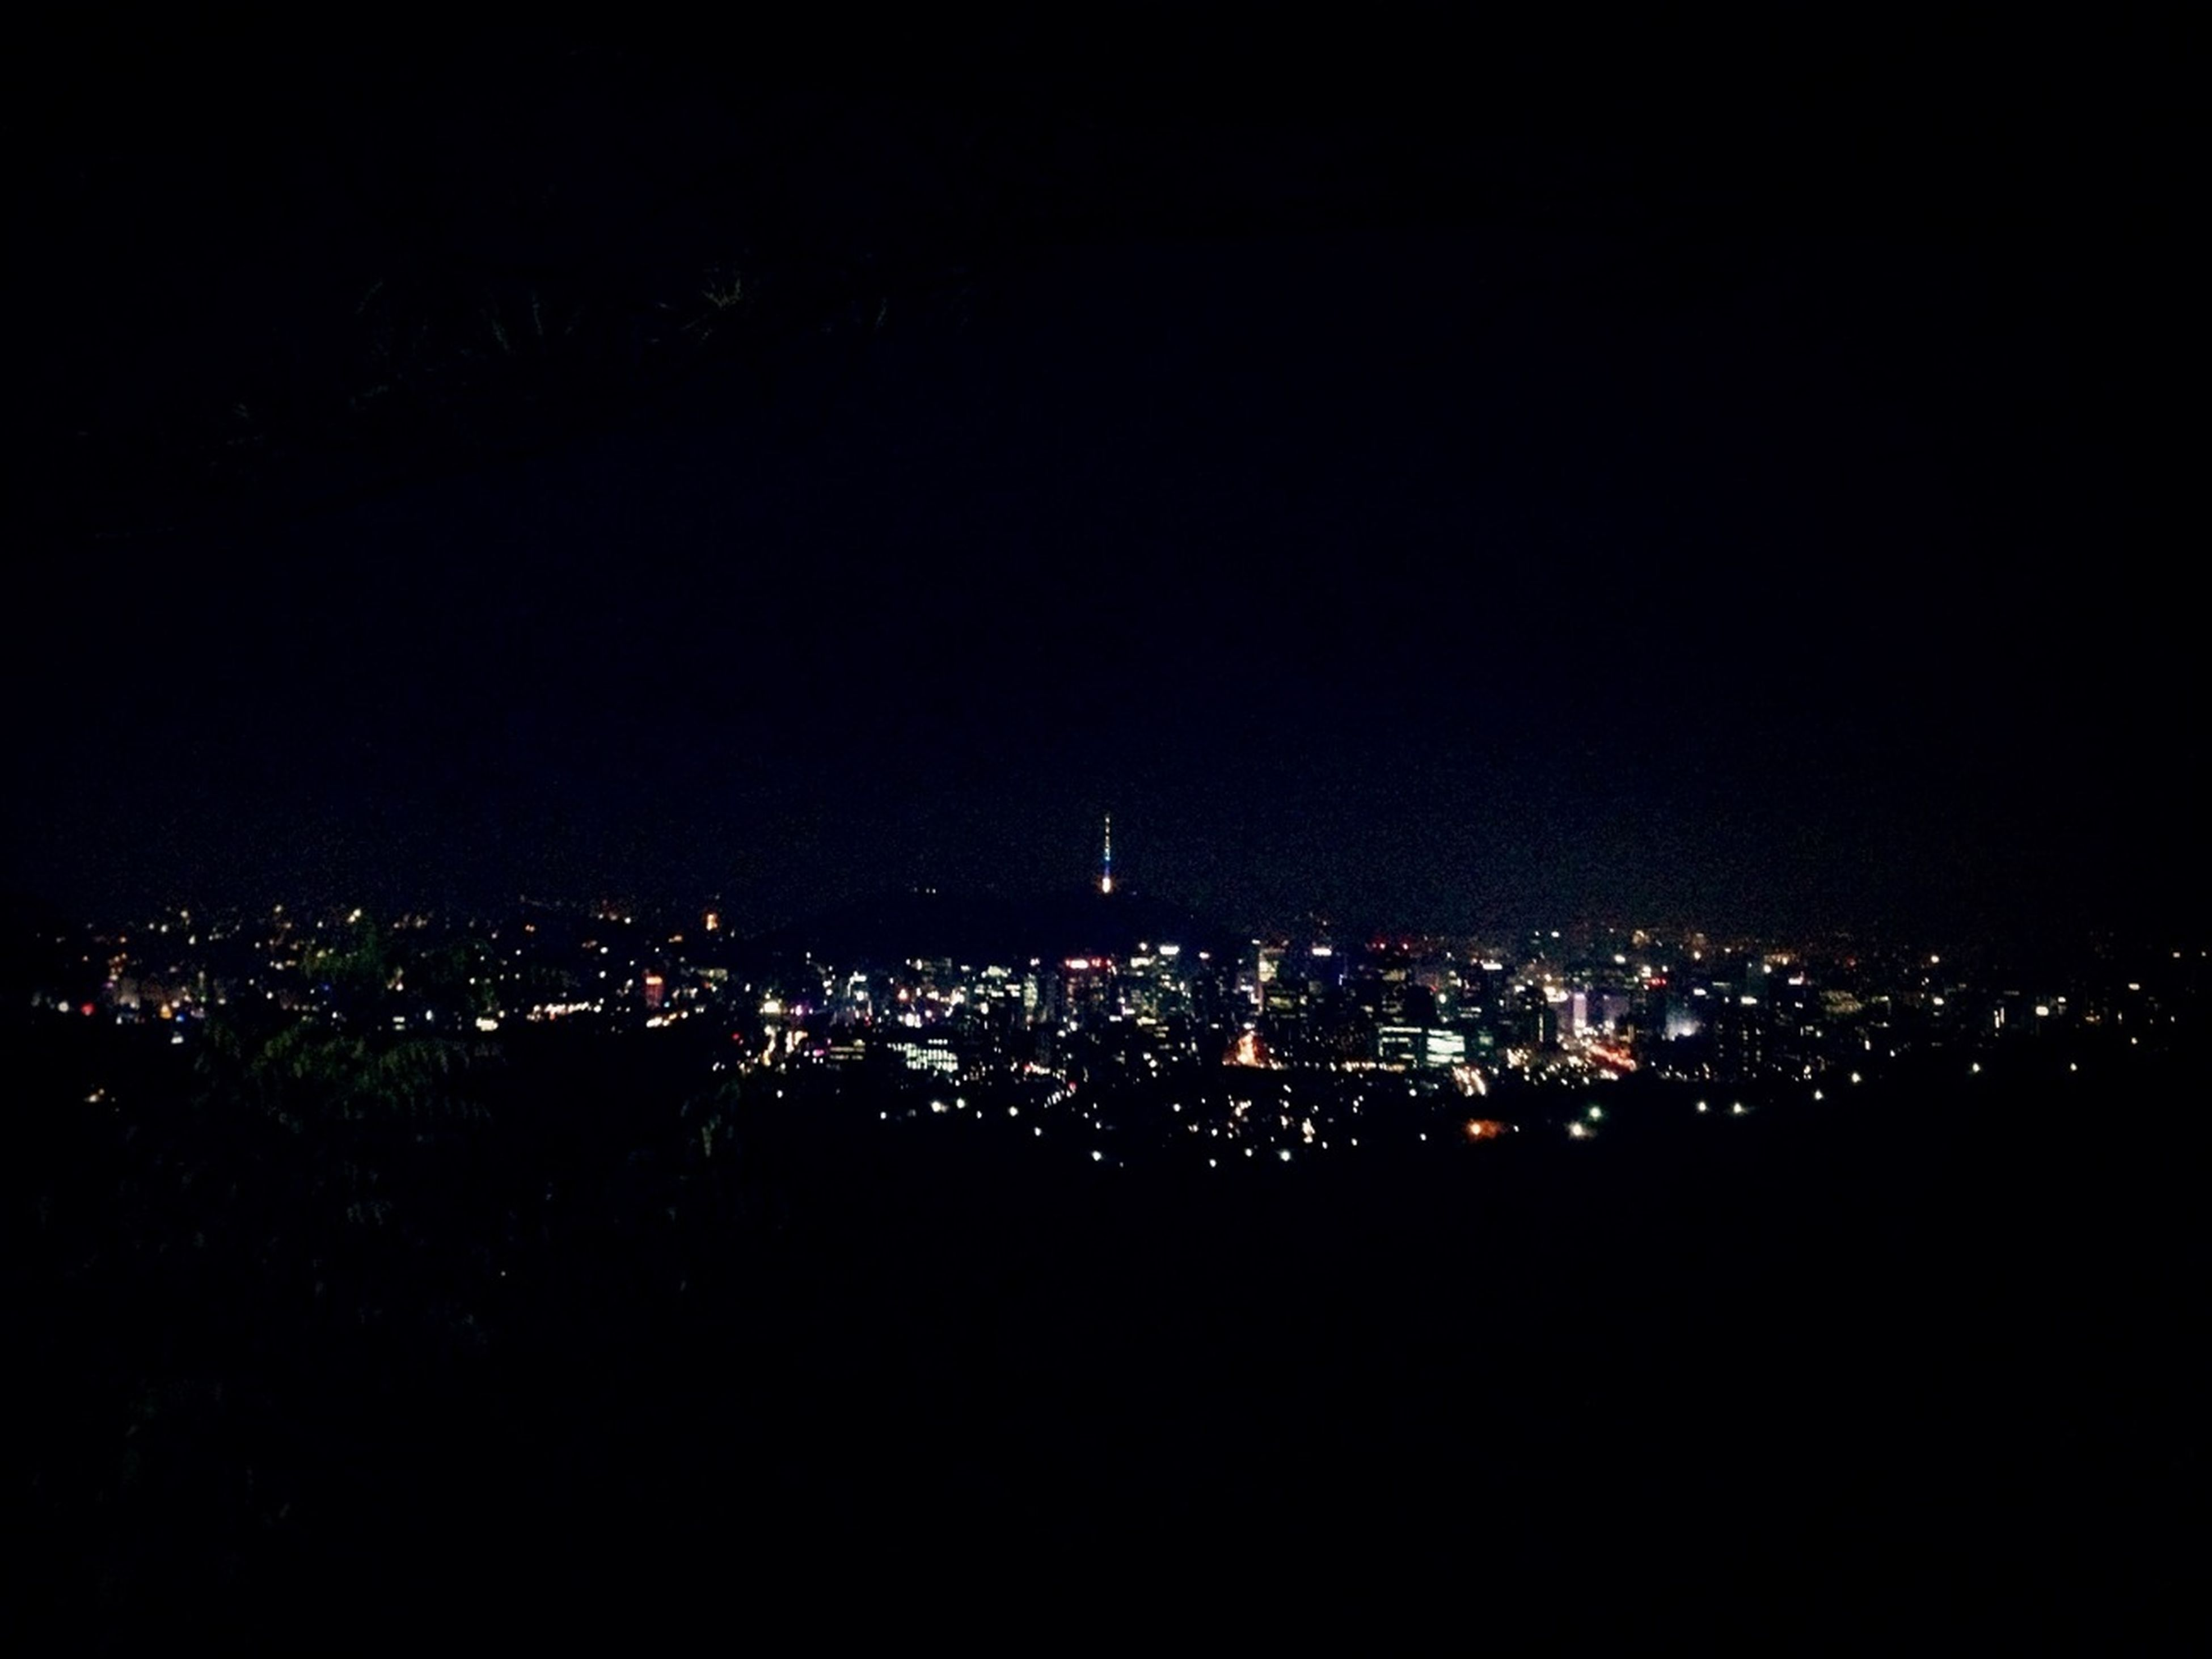 night, cityscape, illuminated, city, building exterior, architecture, crowded, built structure, copy space, high angle view, dark, aerial view, clear sky, residential district, residential building, residential structure, sky, no people, city life, outdoors